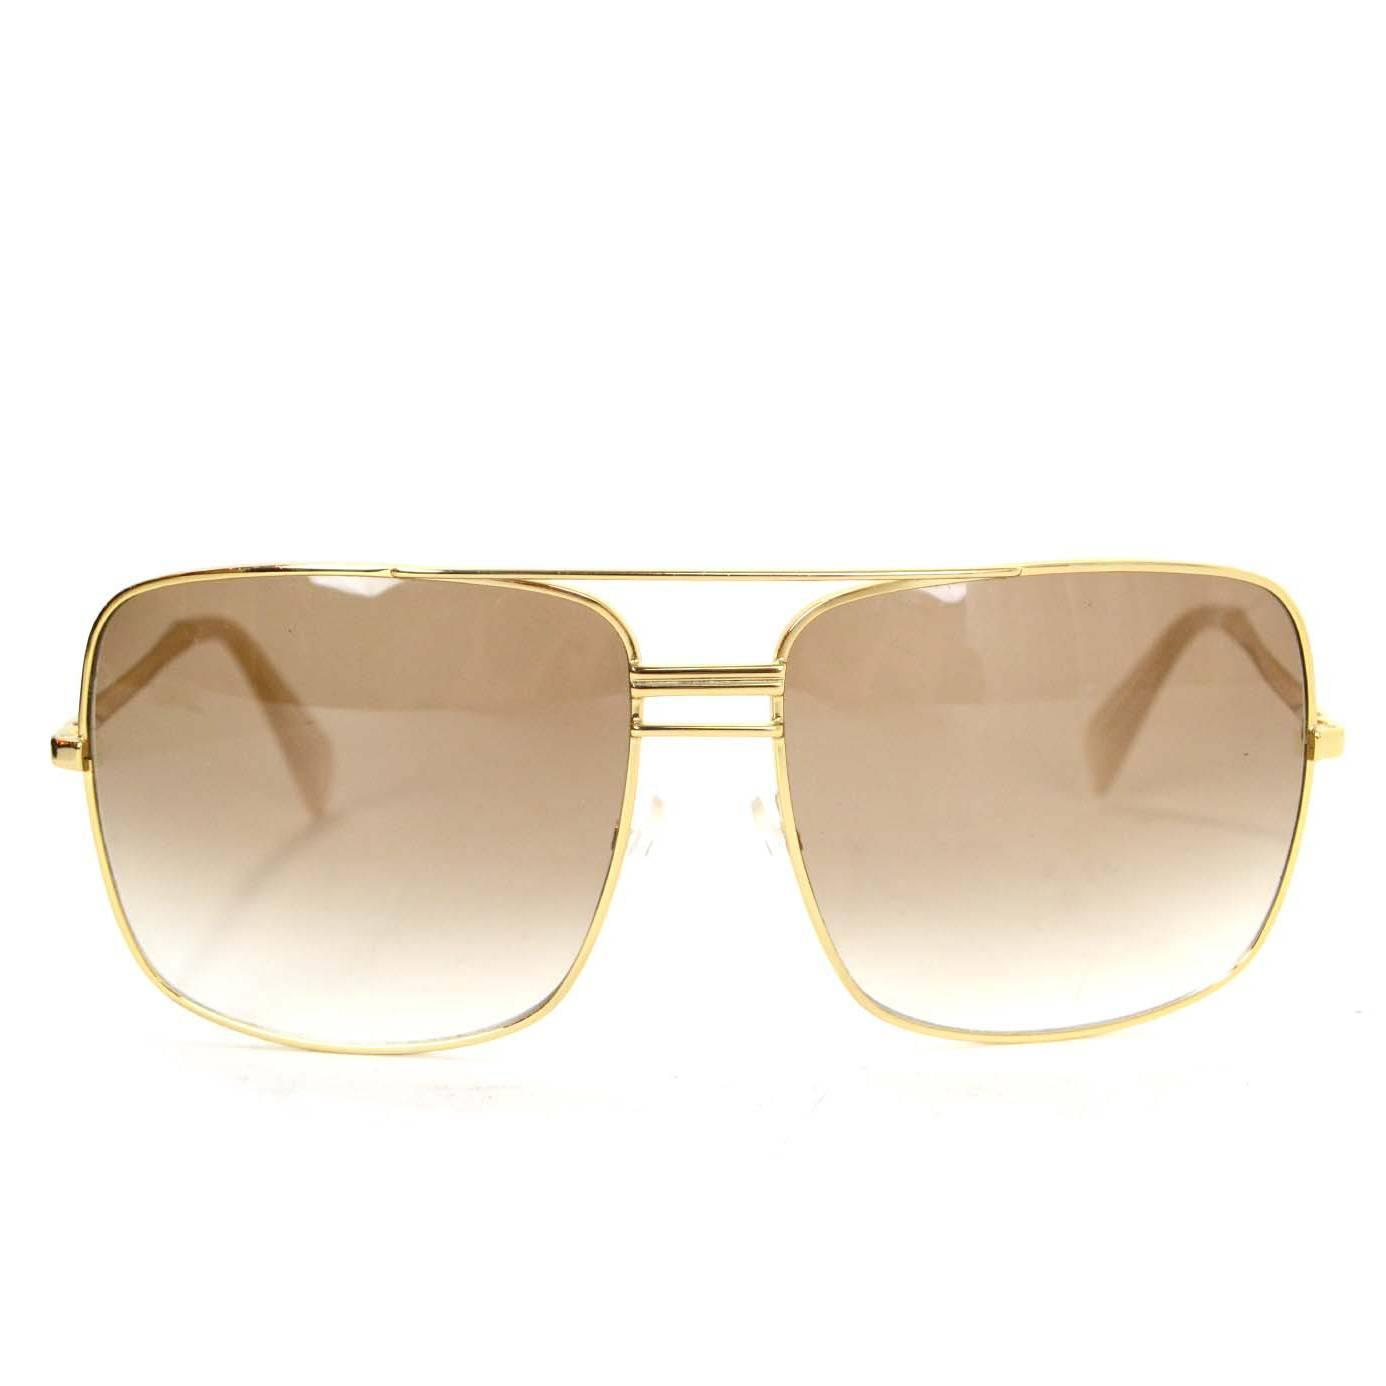 Celine Gold Frame Sunglasses : Celine Gold CL41808/S Aviator Sunglasses For Sale at 1stdibs